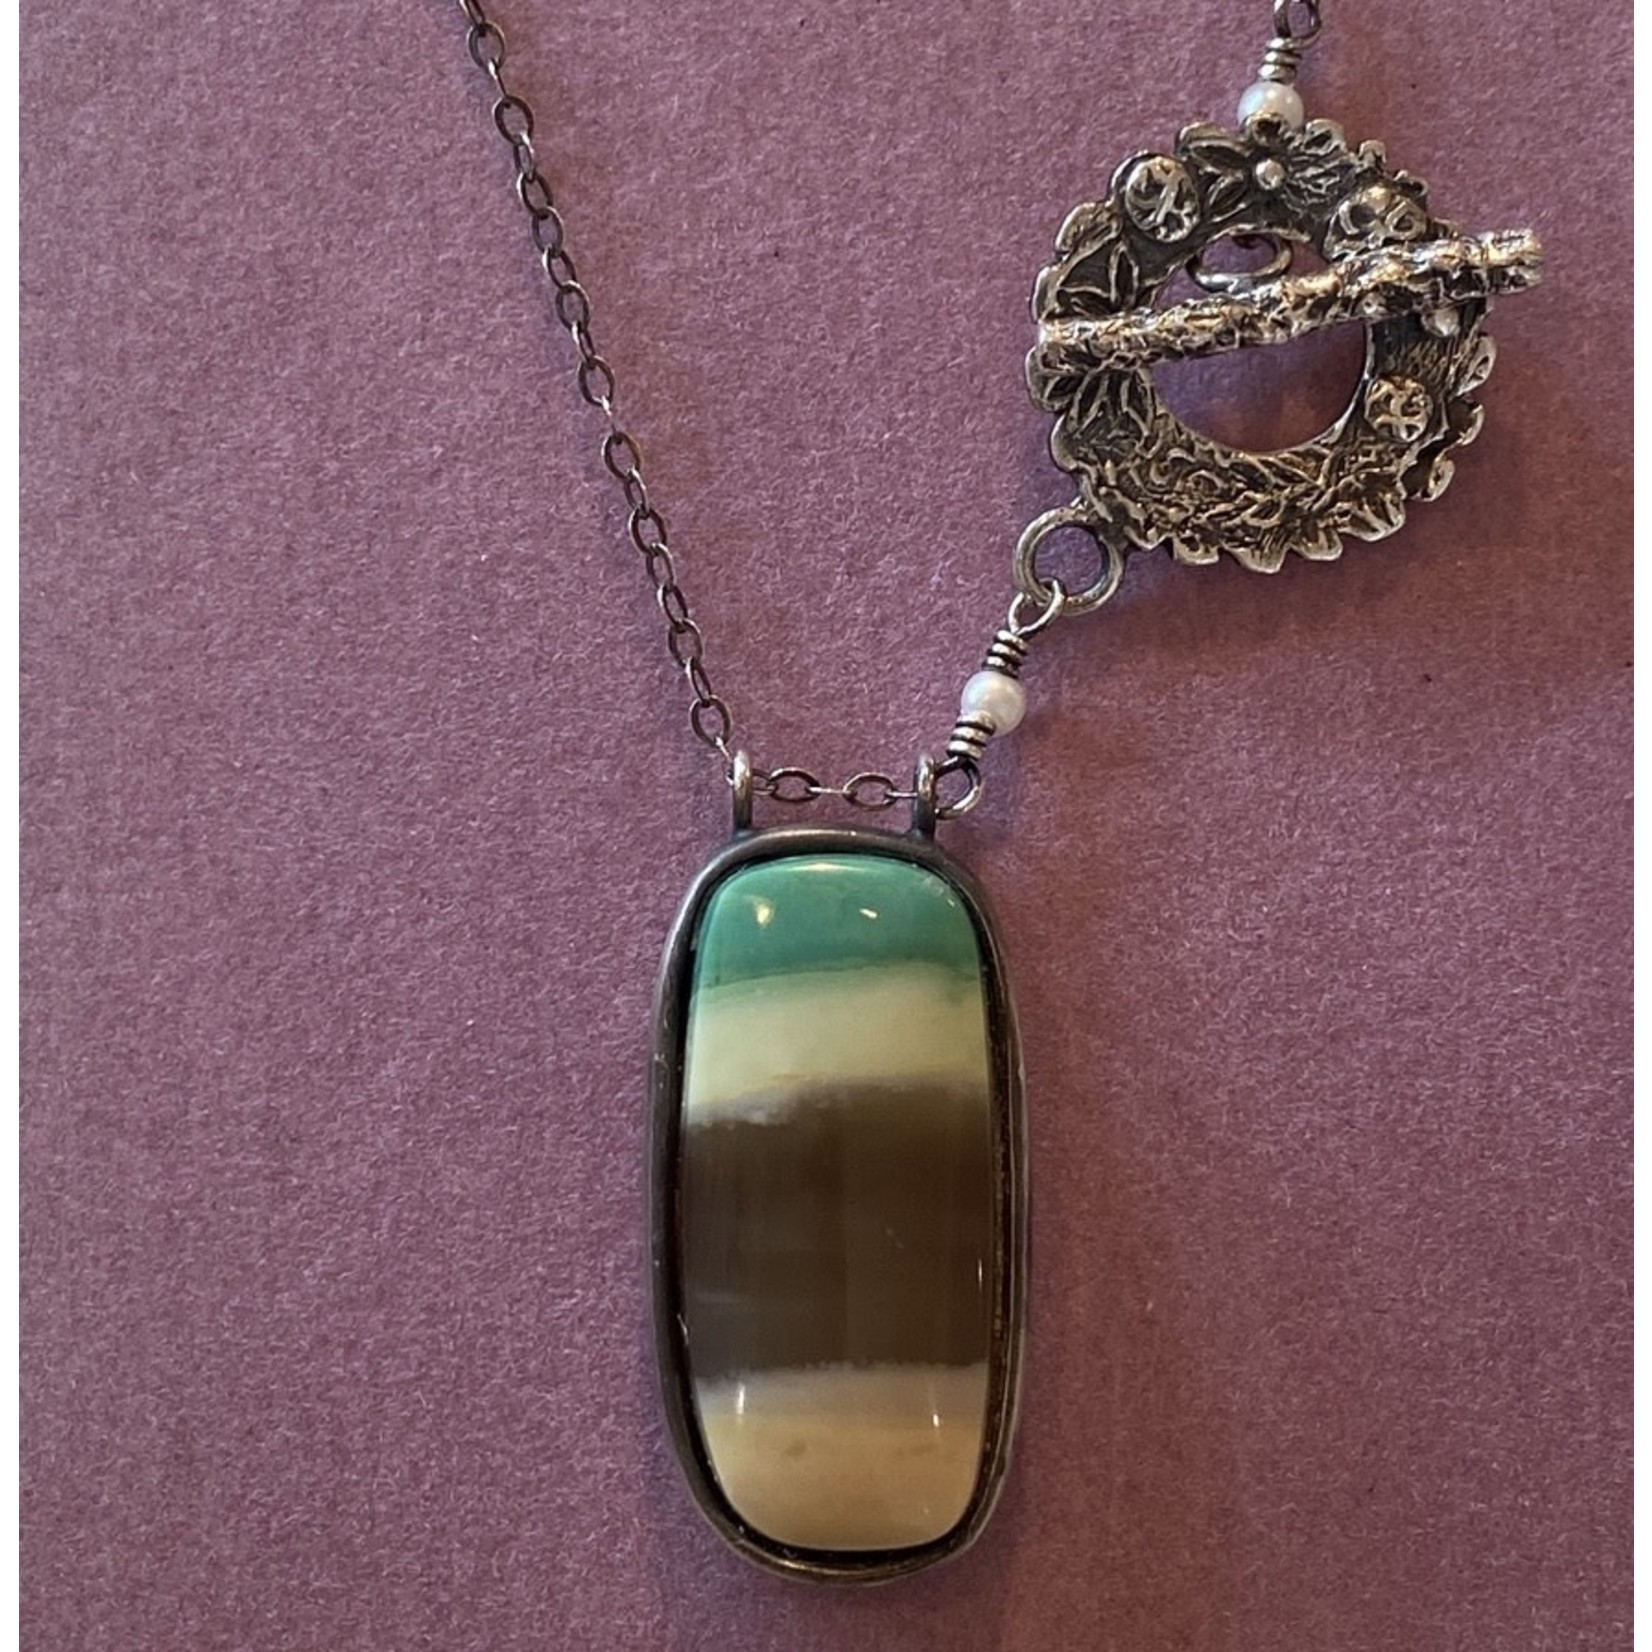 Opalized Wood Amulet w/ Oxidized silver chain necklace and ornate clasp